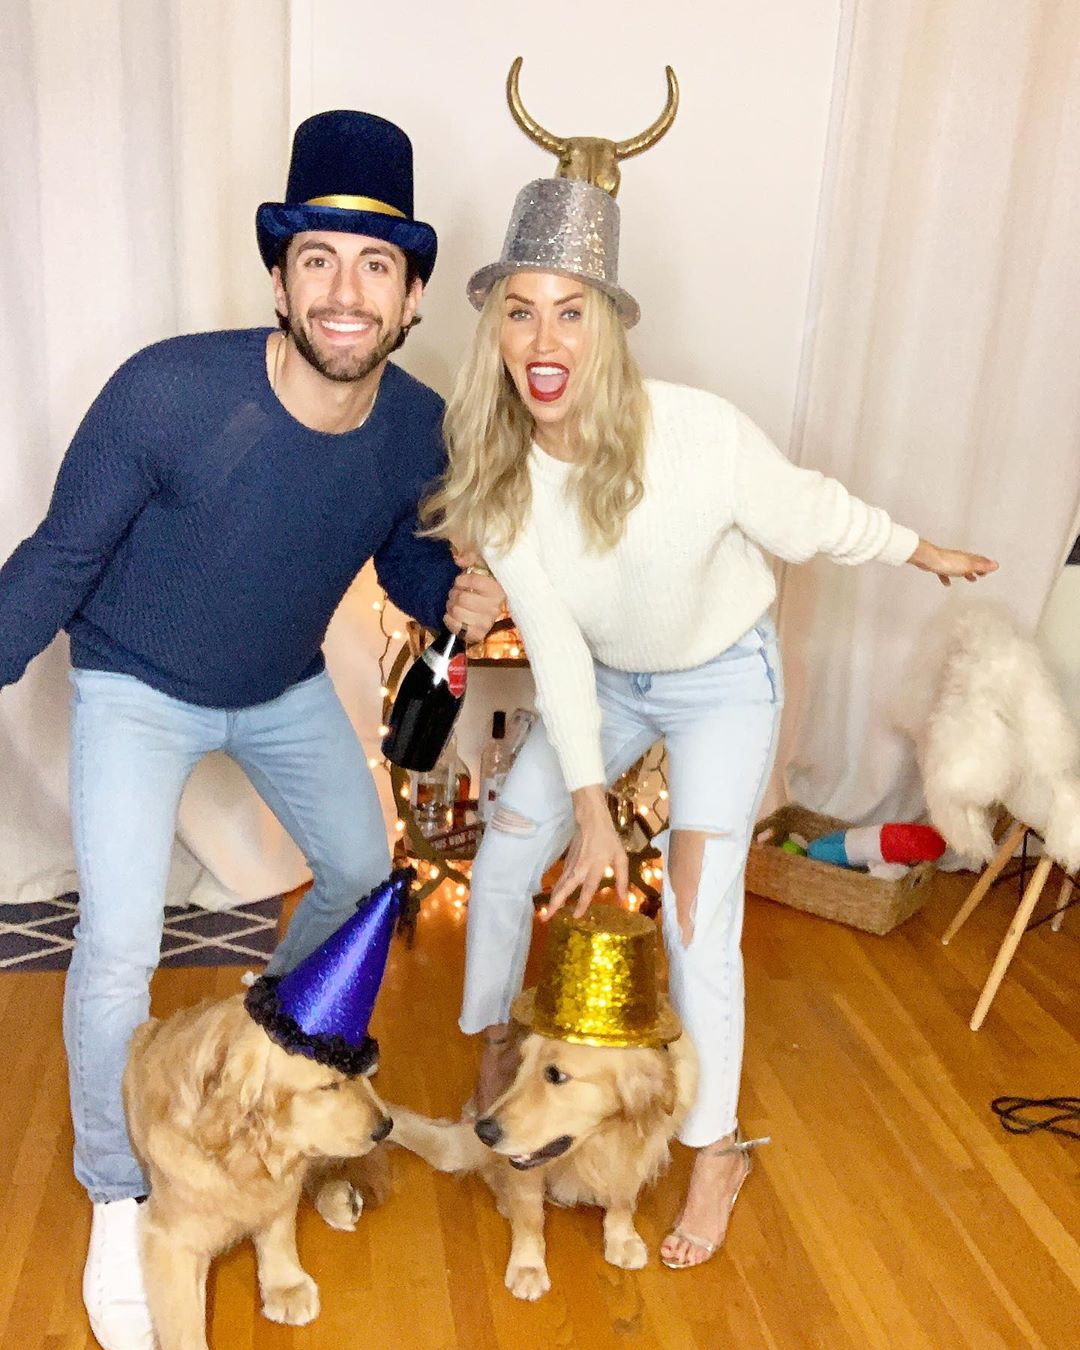 Kaitlyn Bristowe and Jason Tartick Have a Puppy Party in Quarantine